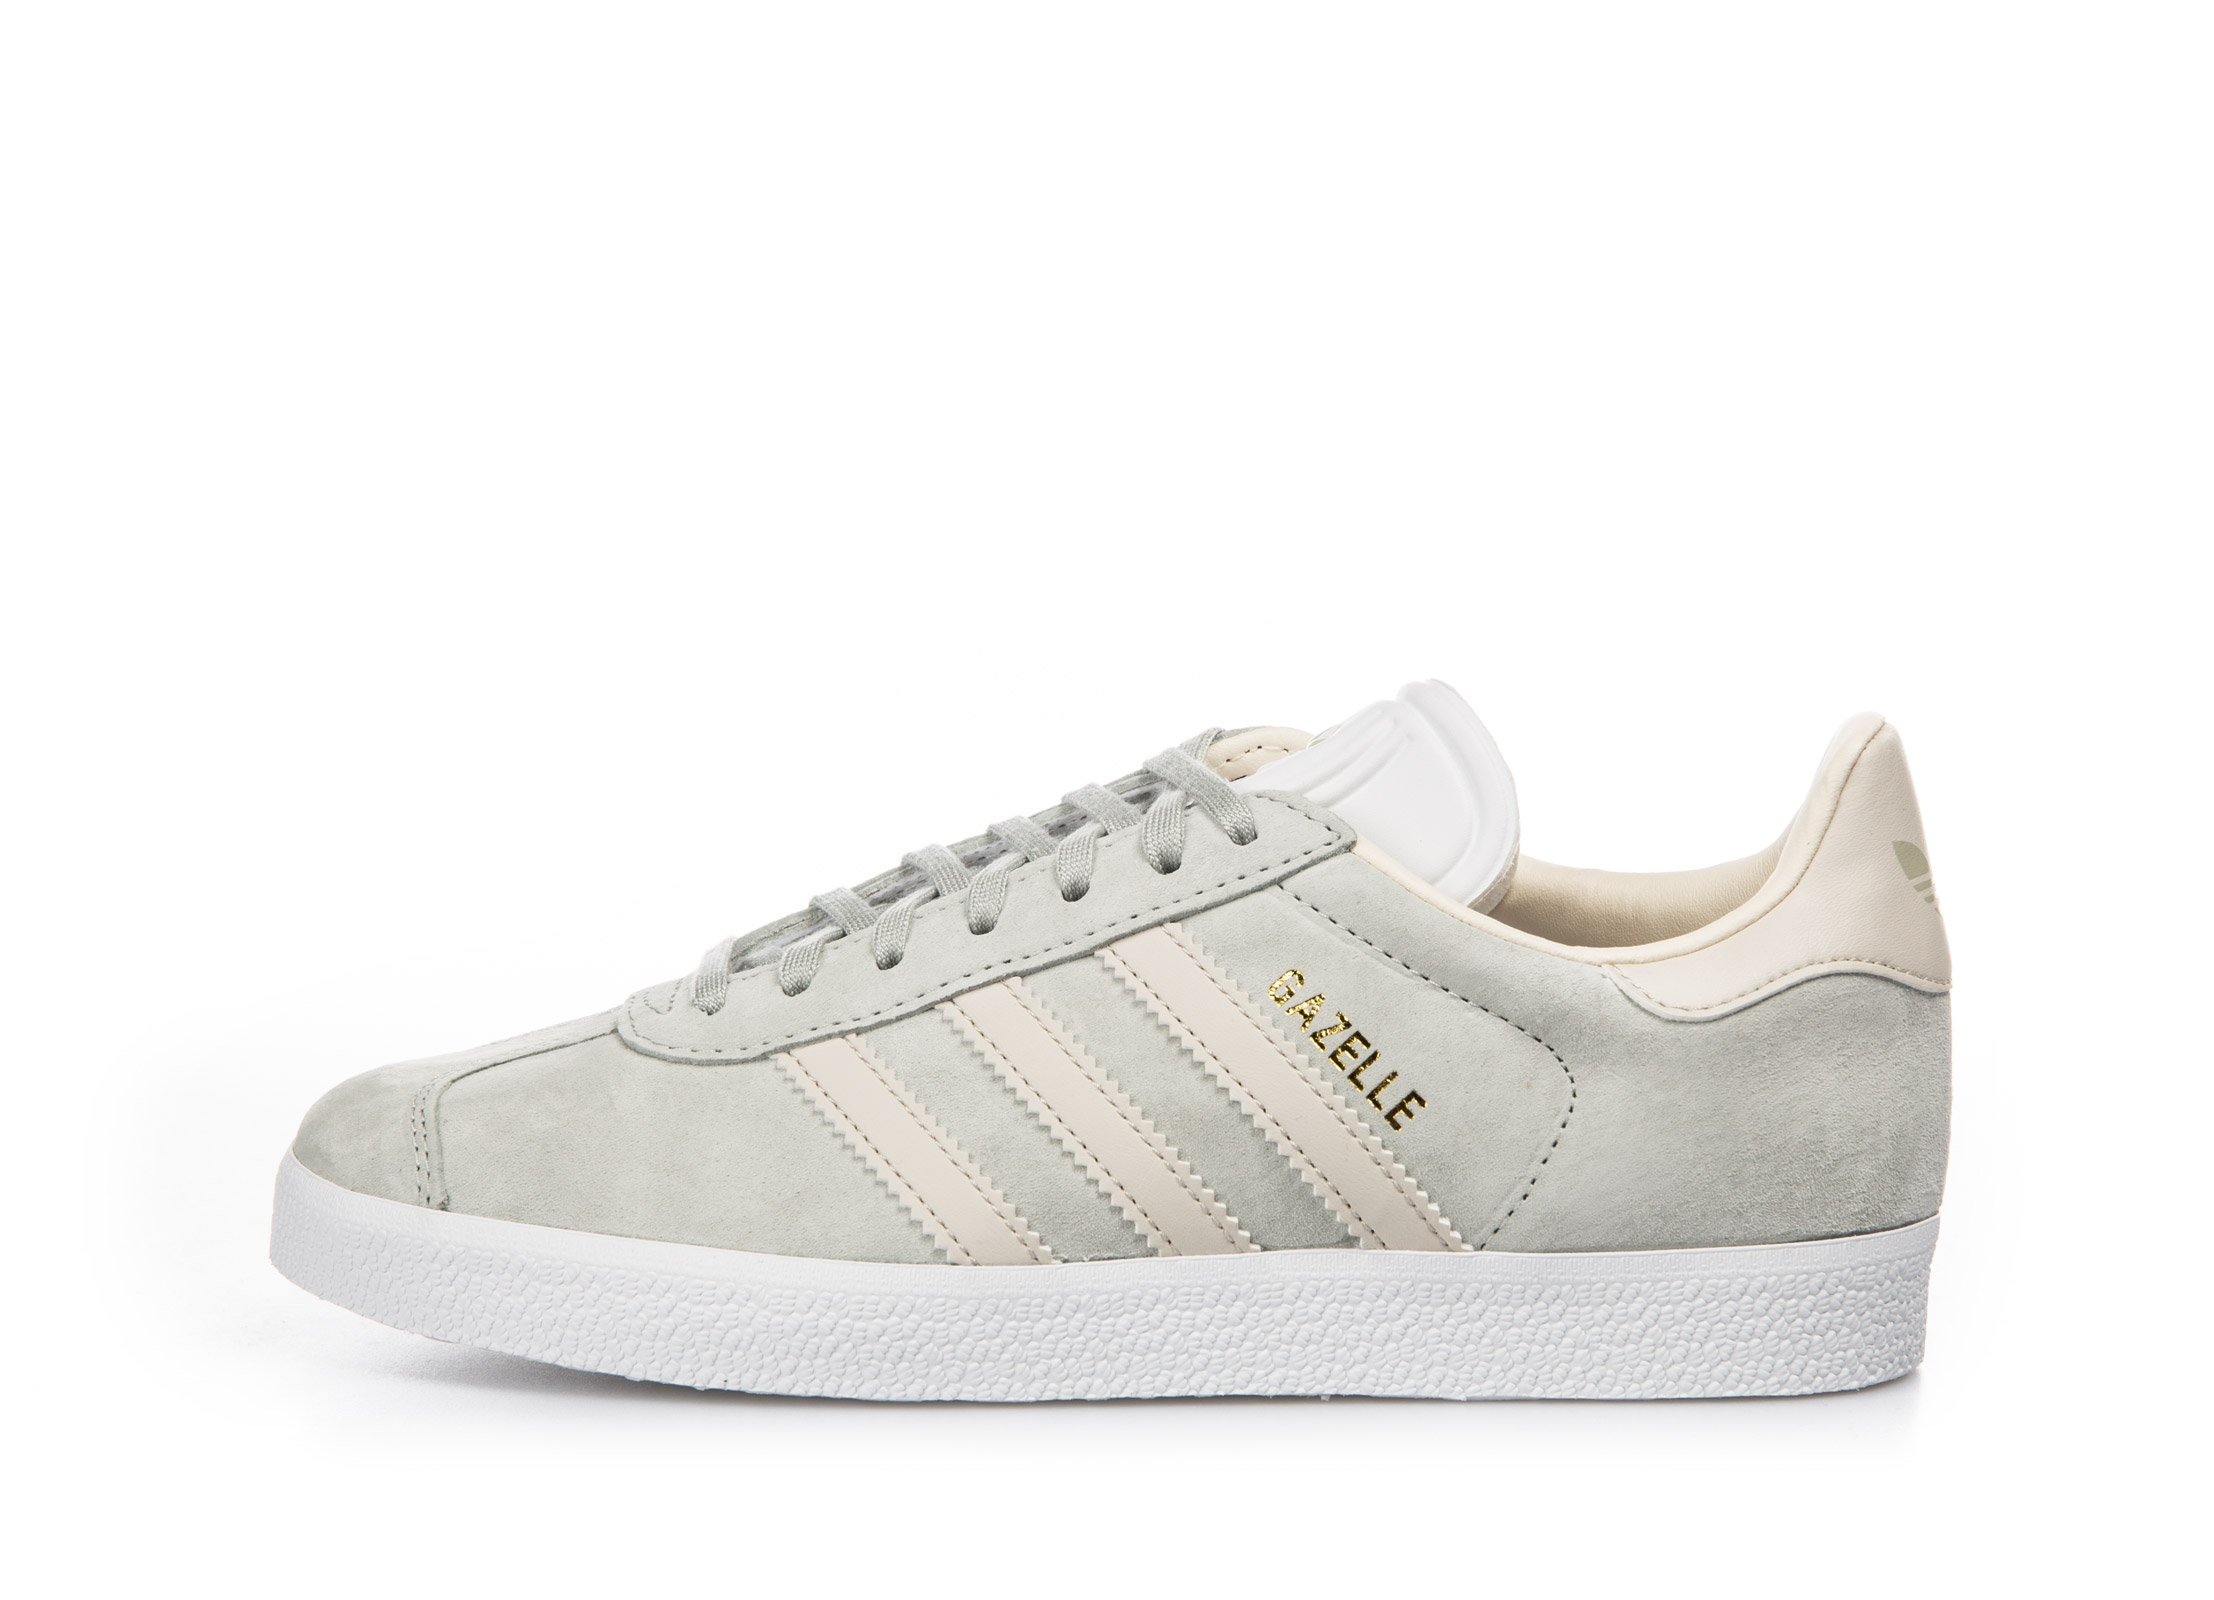 adidas Originals GAZELLE CG6065 Οινοπνευματί